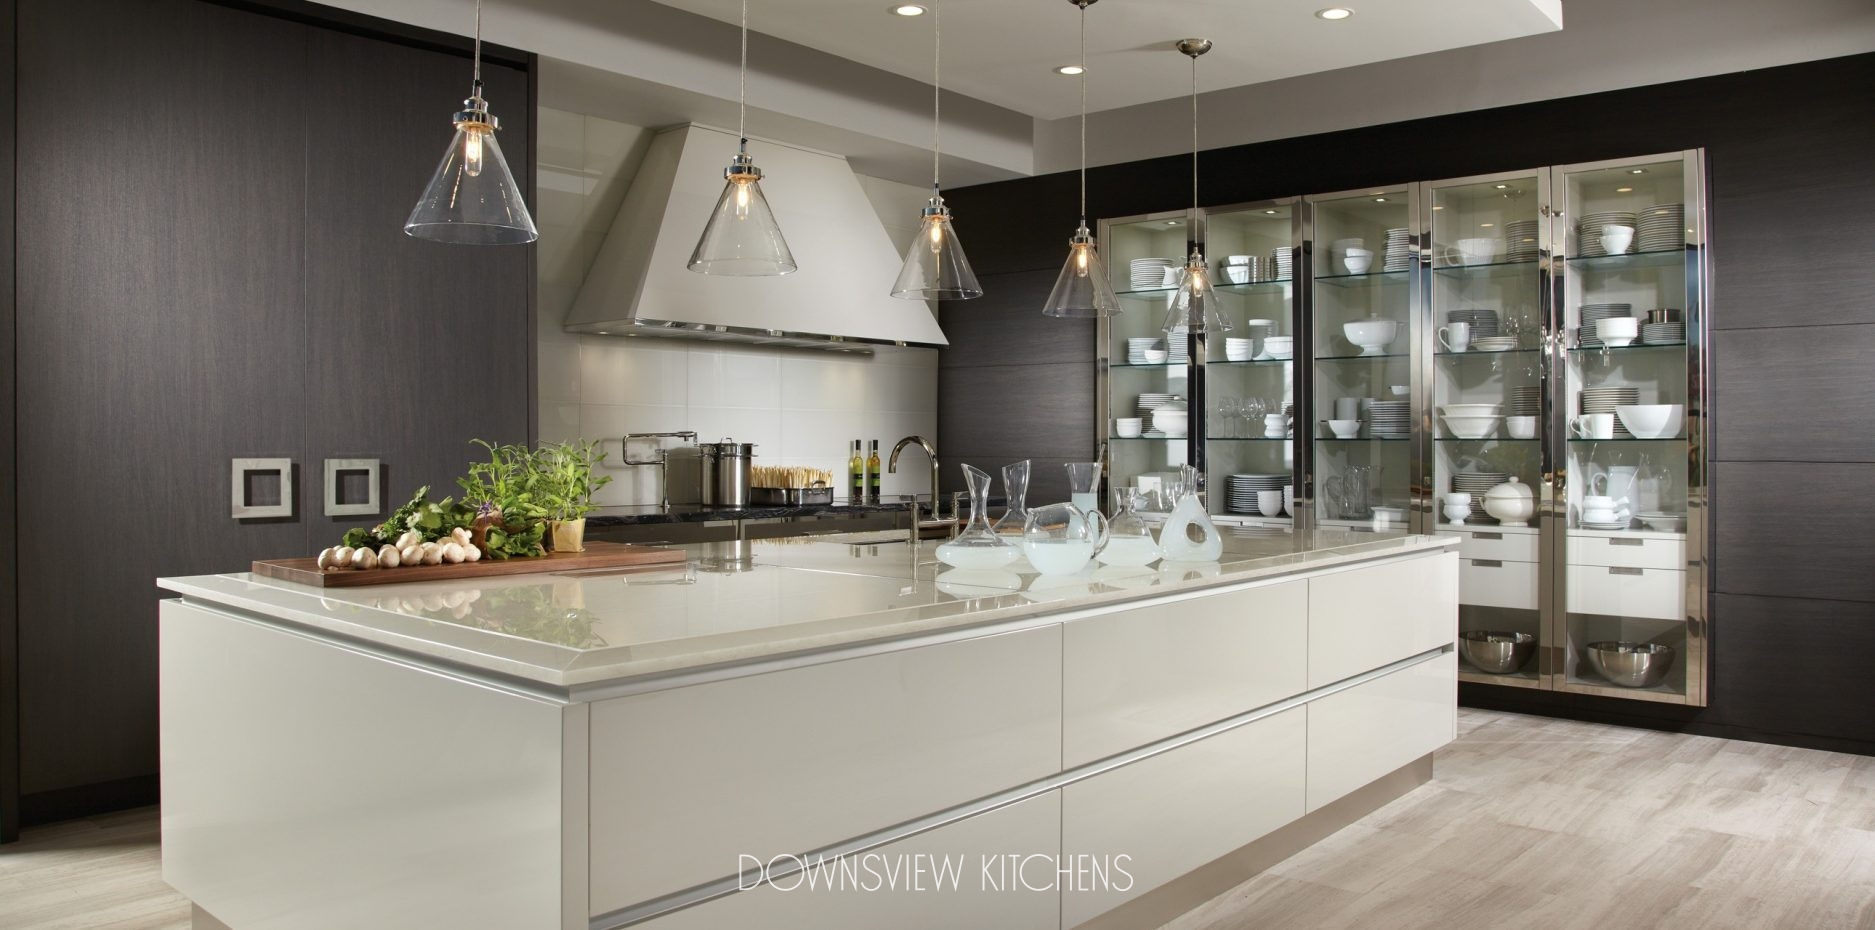 Custom Kitchen Cabinets Mississauga Modern Reflections Downsview Kitchens And Fine Custom Cabinetry